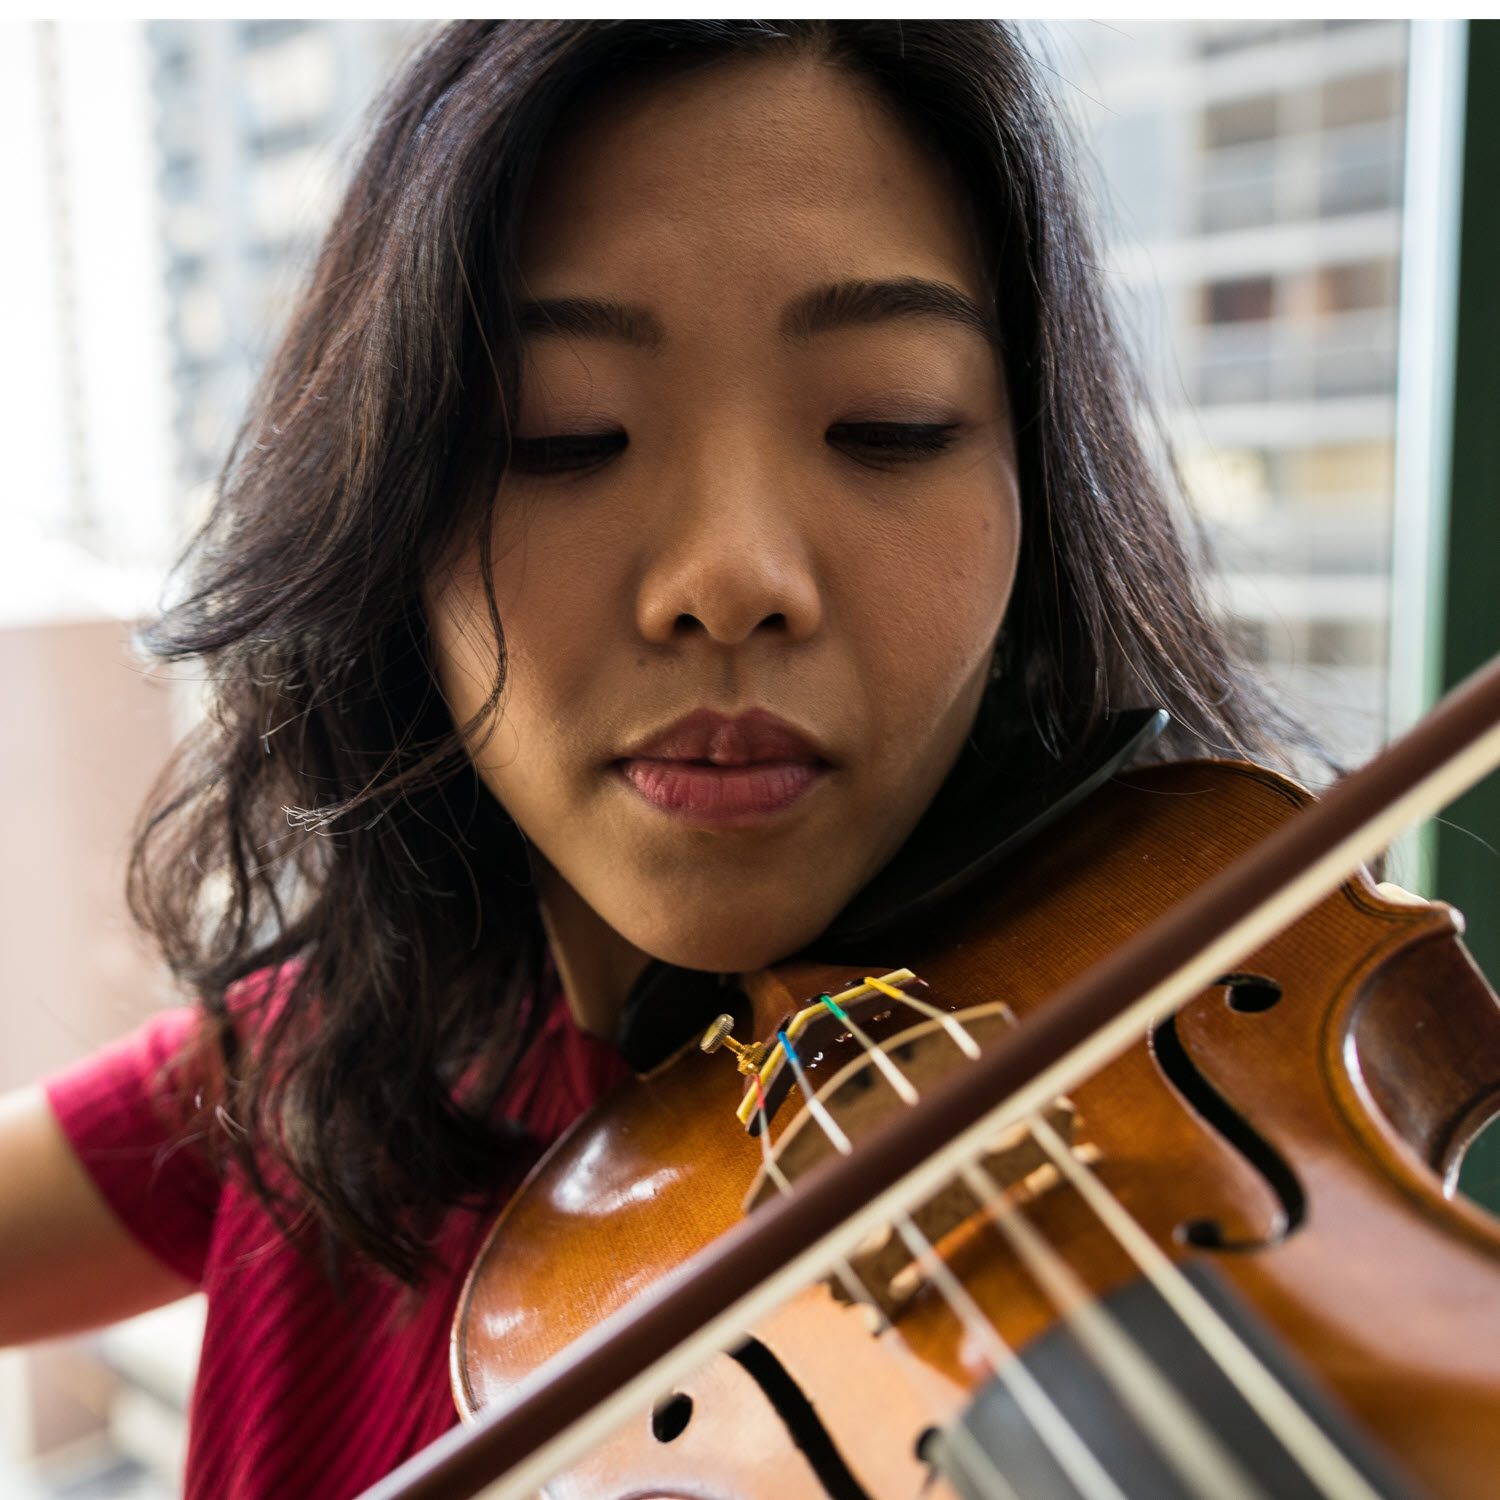 Let's start with the good news. - If your goal is to be able to have fun with the world's most beautiful instrument, then there is no reason you can't learn violin on your own.We made the Trala App for those who want to take violin lessons online. Plus, there are loads of other online resources to help beginning violinists.